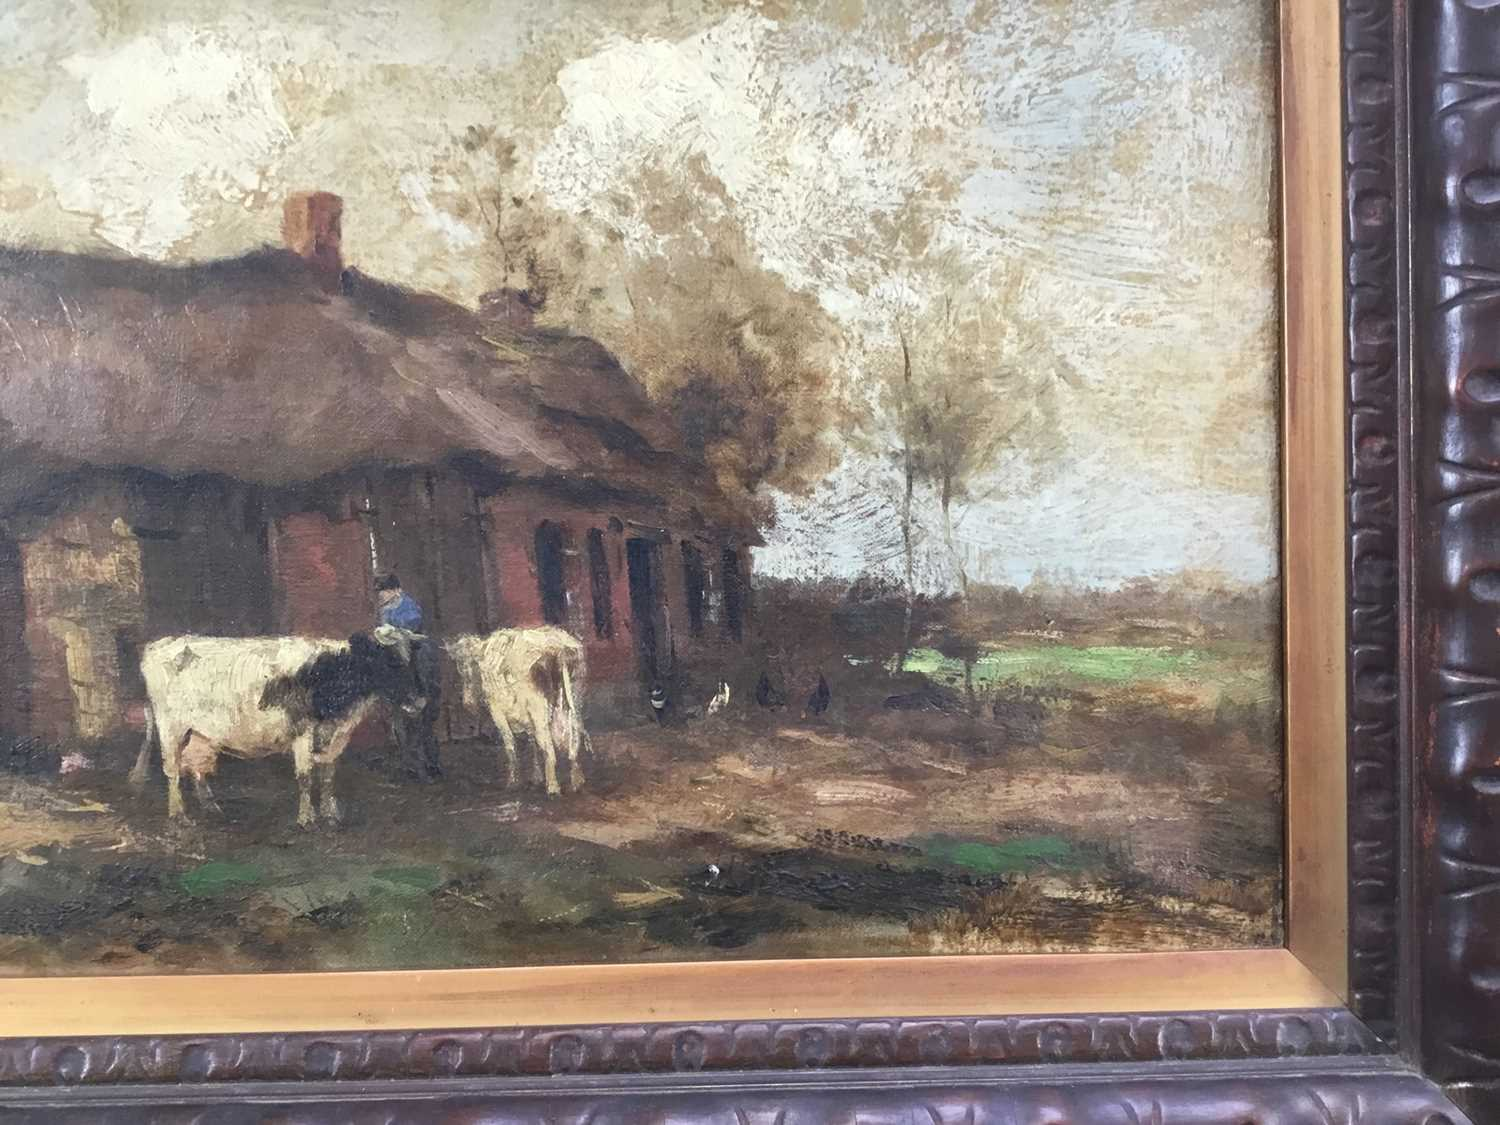 Willem G. F. Jansen (1871-1949) oil on canvas Figure and cattle in landscape - Image 7 of 10